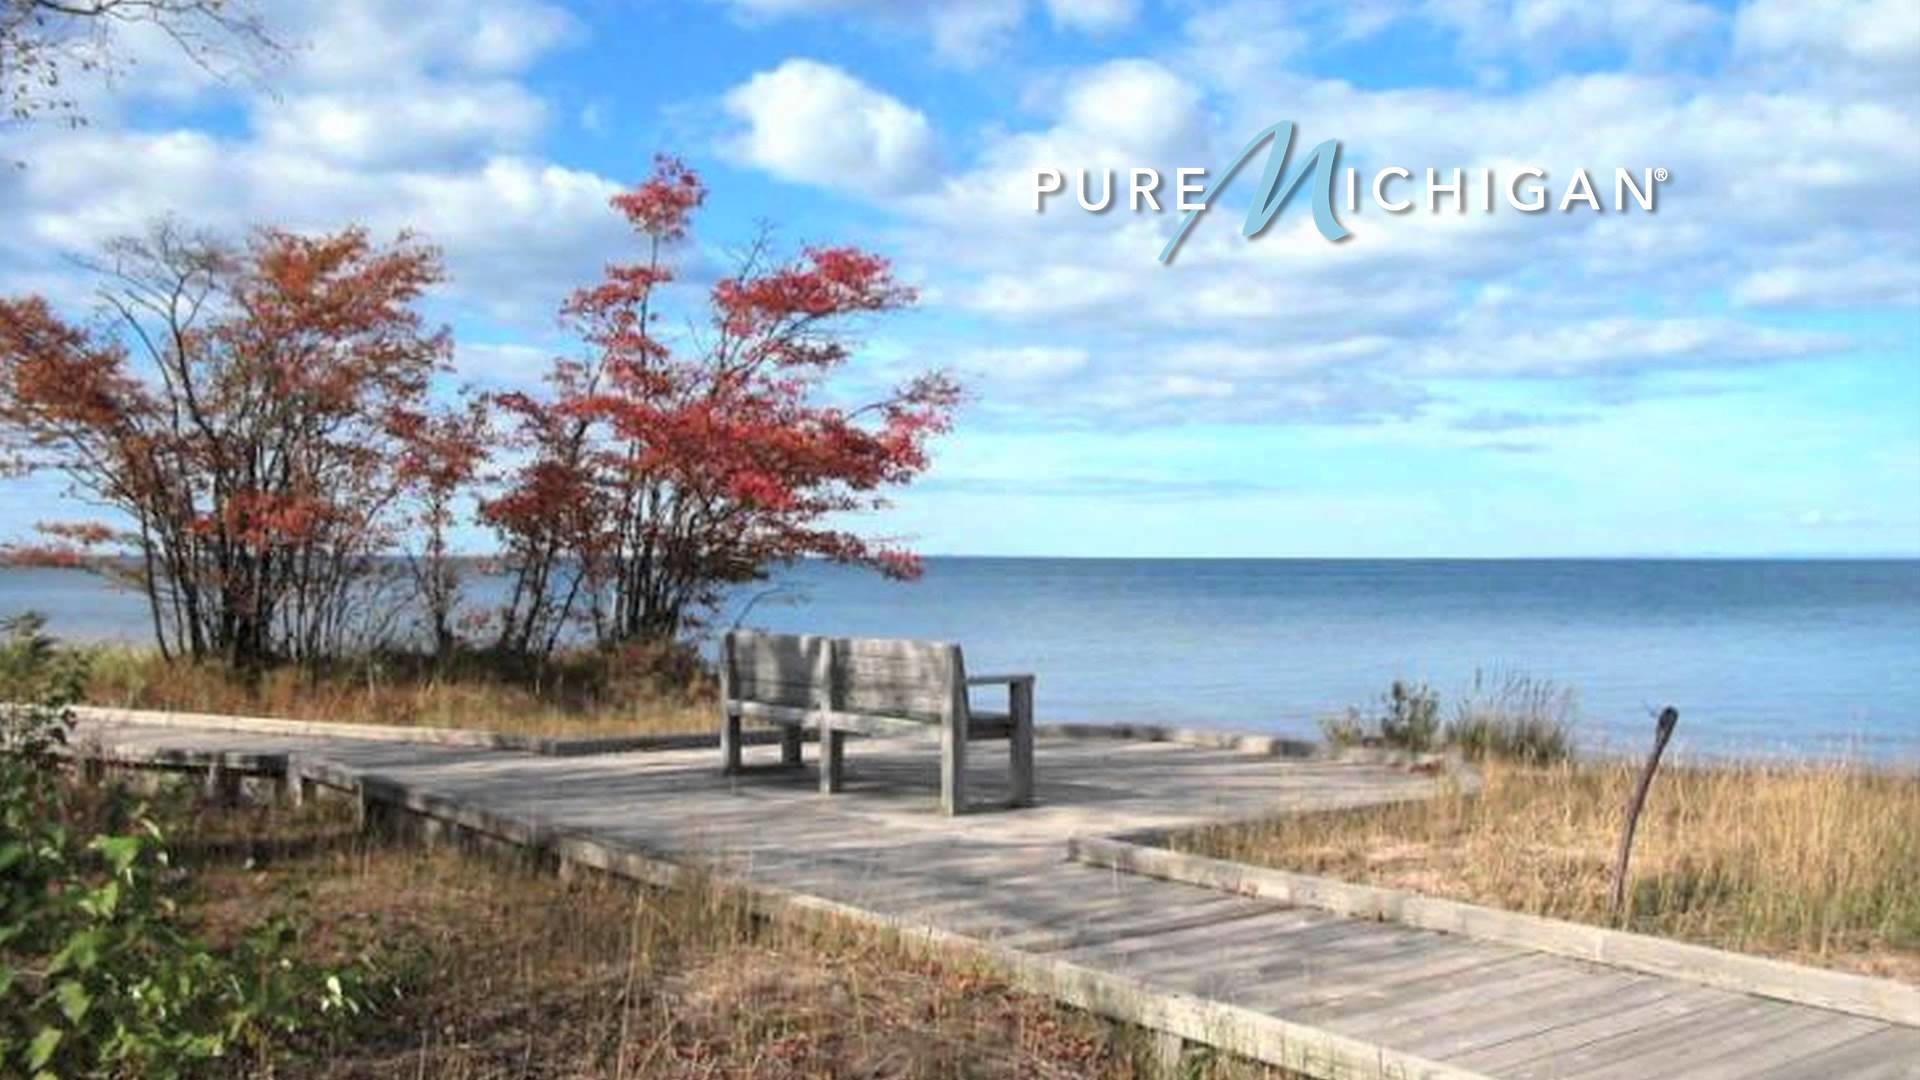 pure michigan desktop wallpapers 49 images